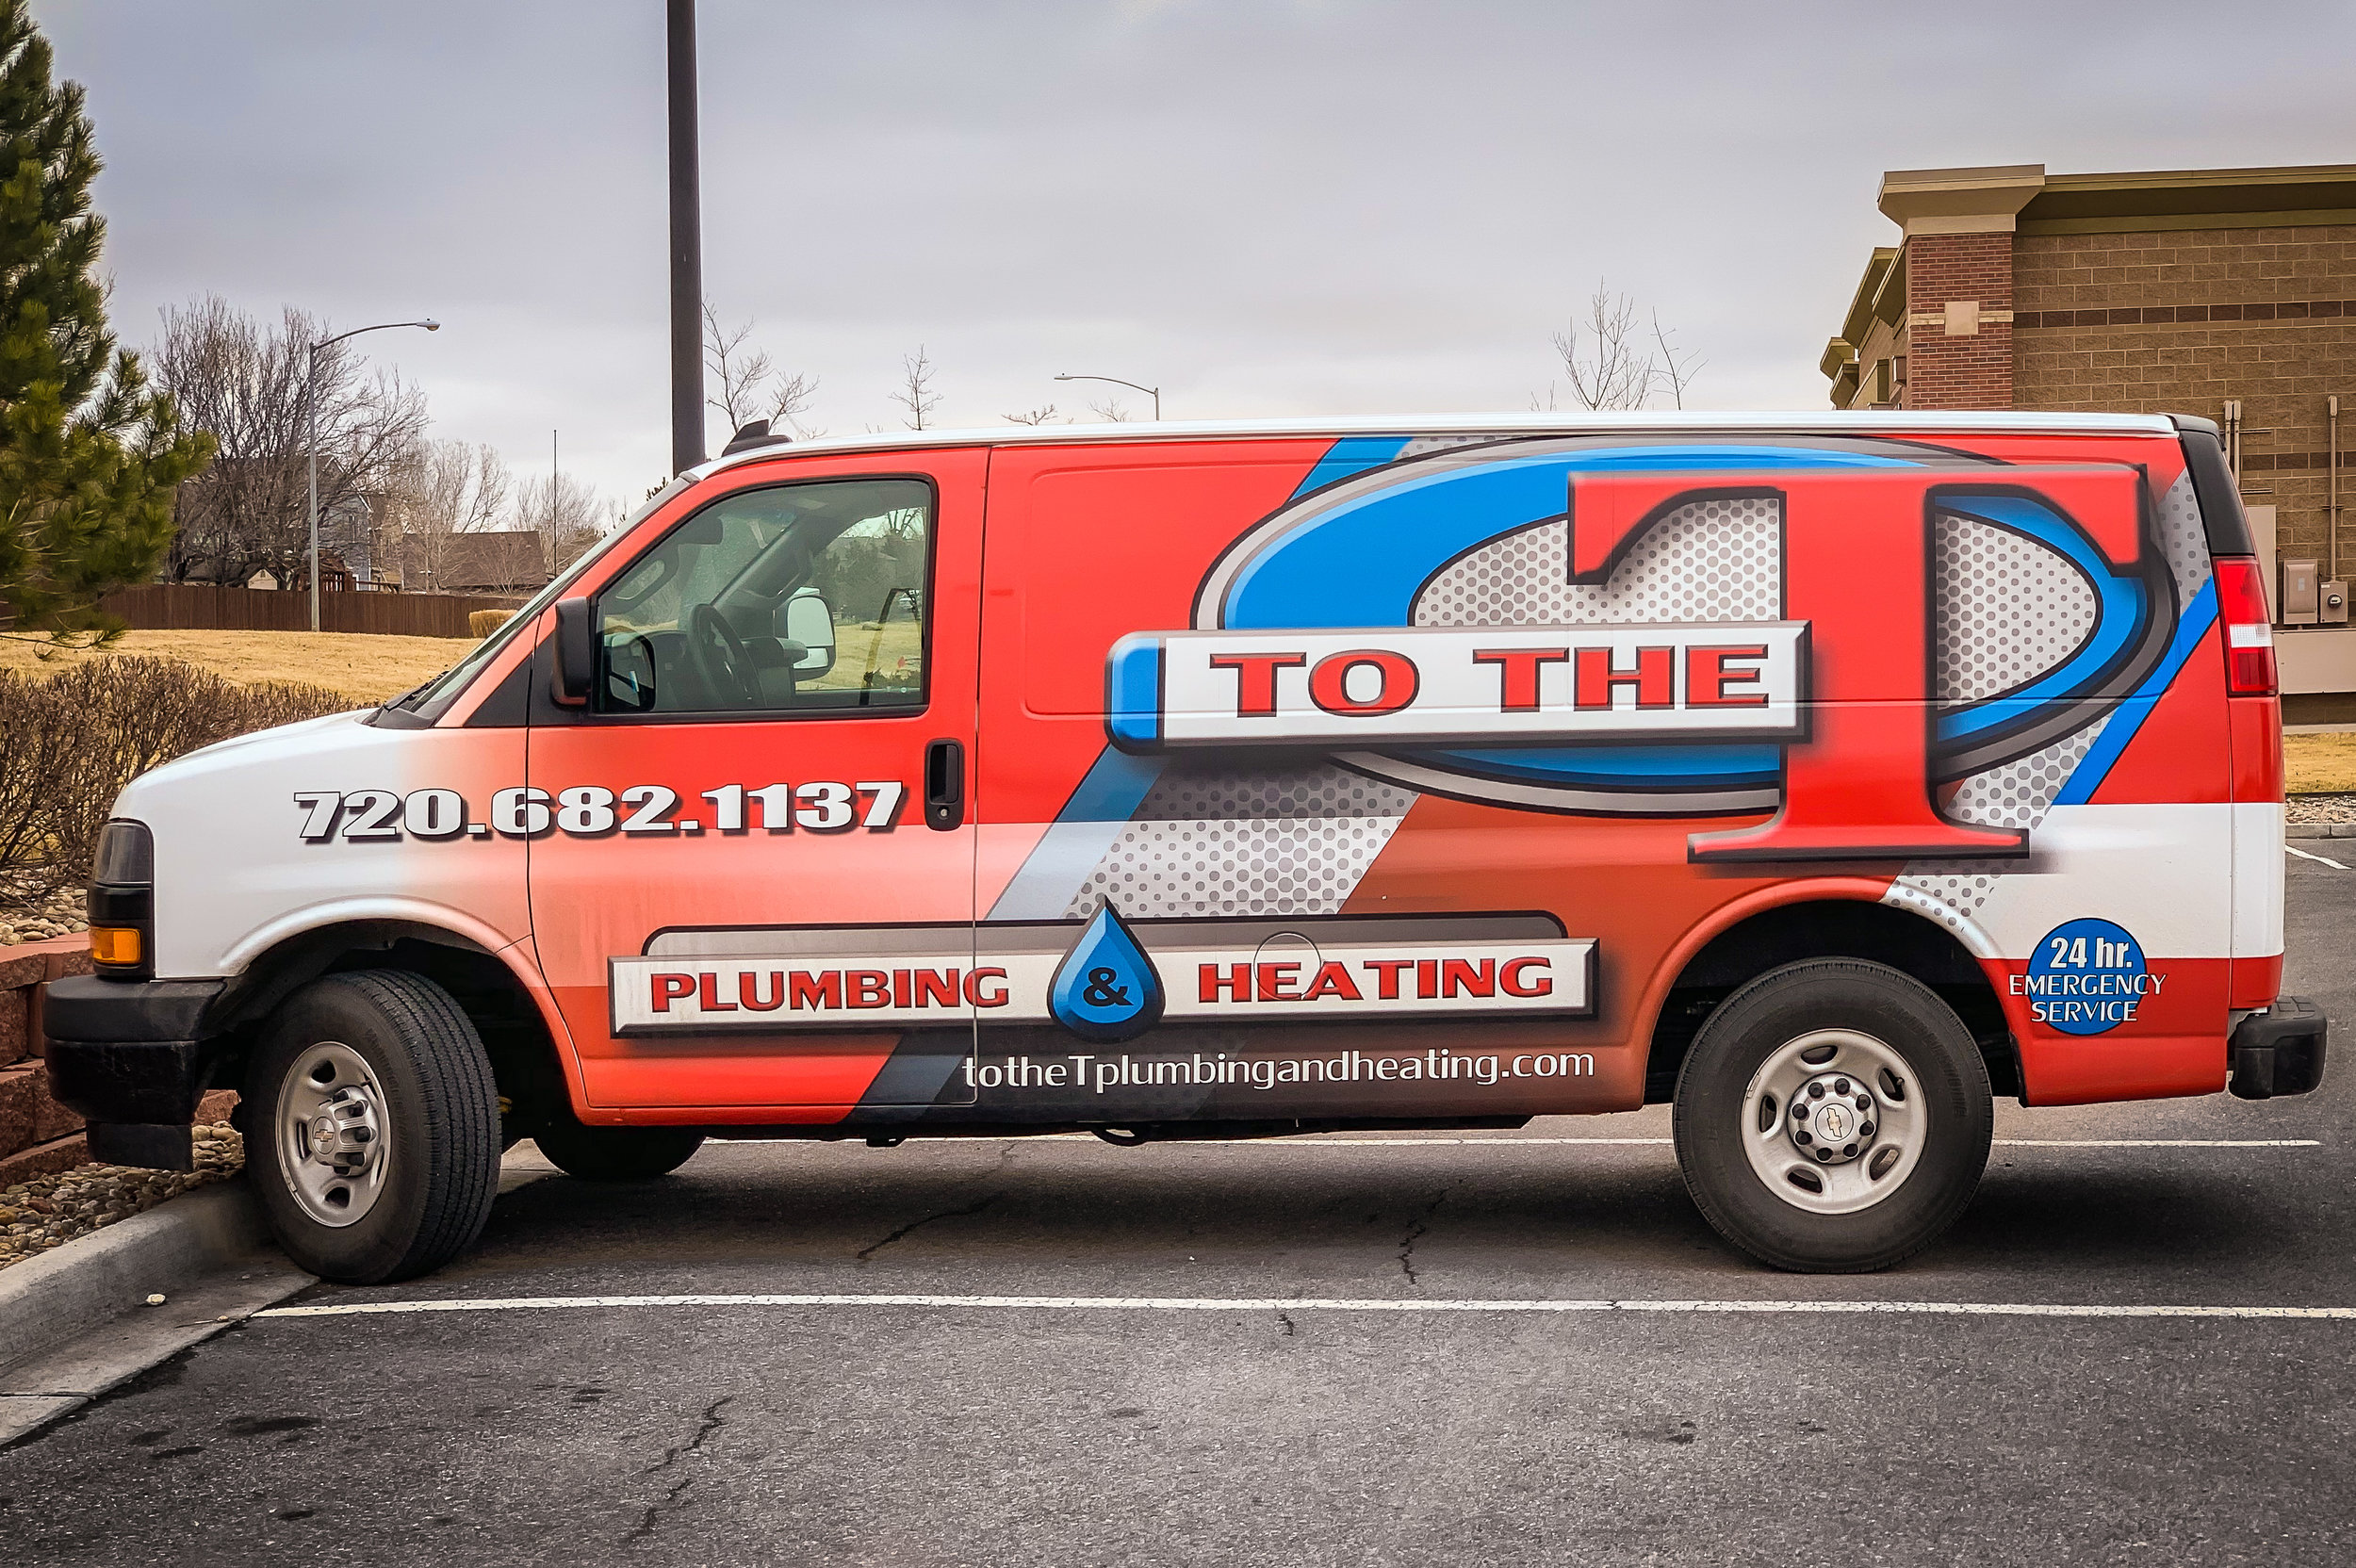 About - Nate Trail has pioneered his way through the commercial and residential plumbing and heating industry. Read about how he has led the charge and paved his own path with To the T Plumbing & Heating.